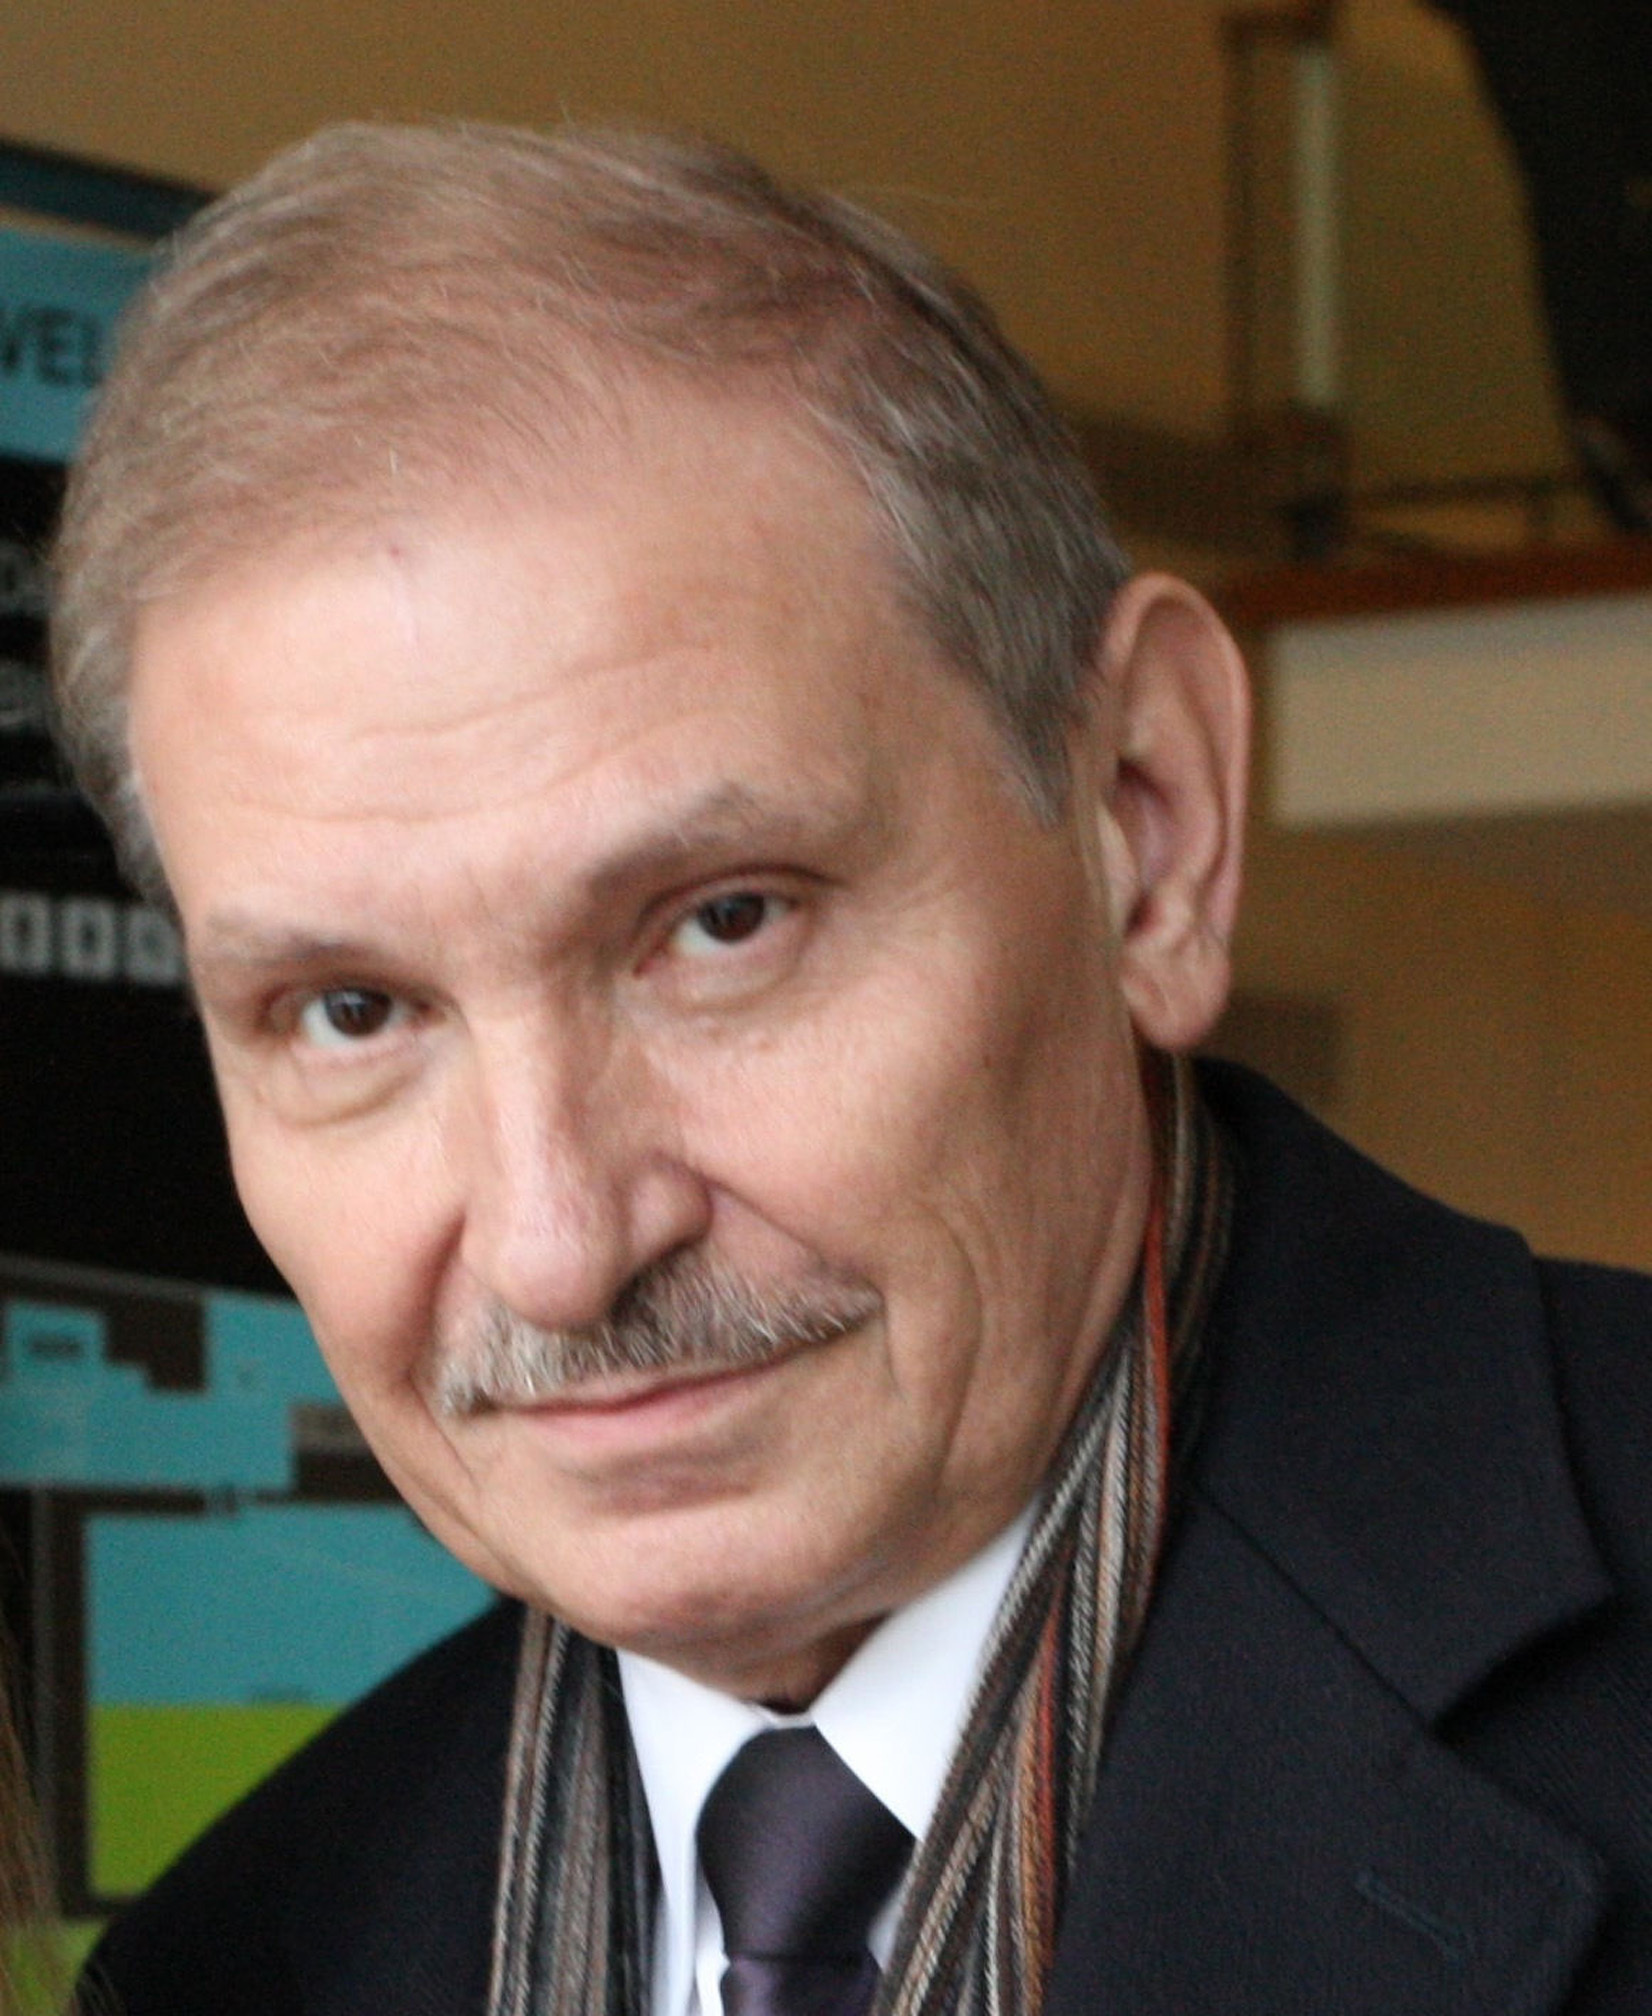 Russian Federation: police say Nikolai Glushkov, enemy of Putin, was murdered